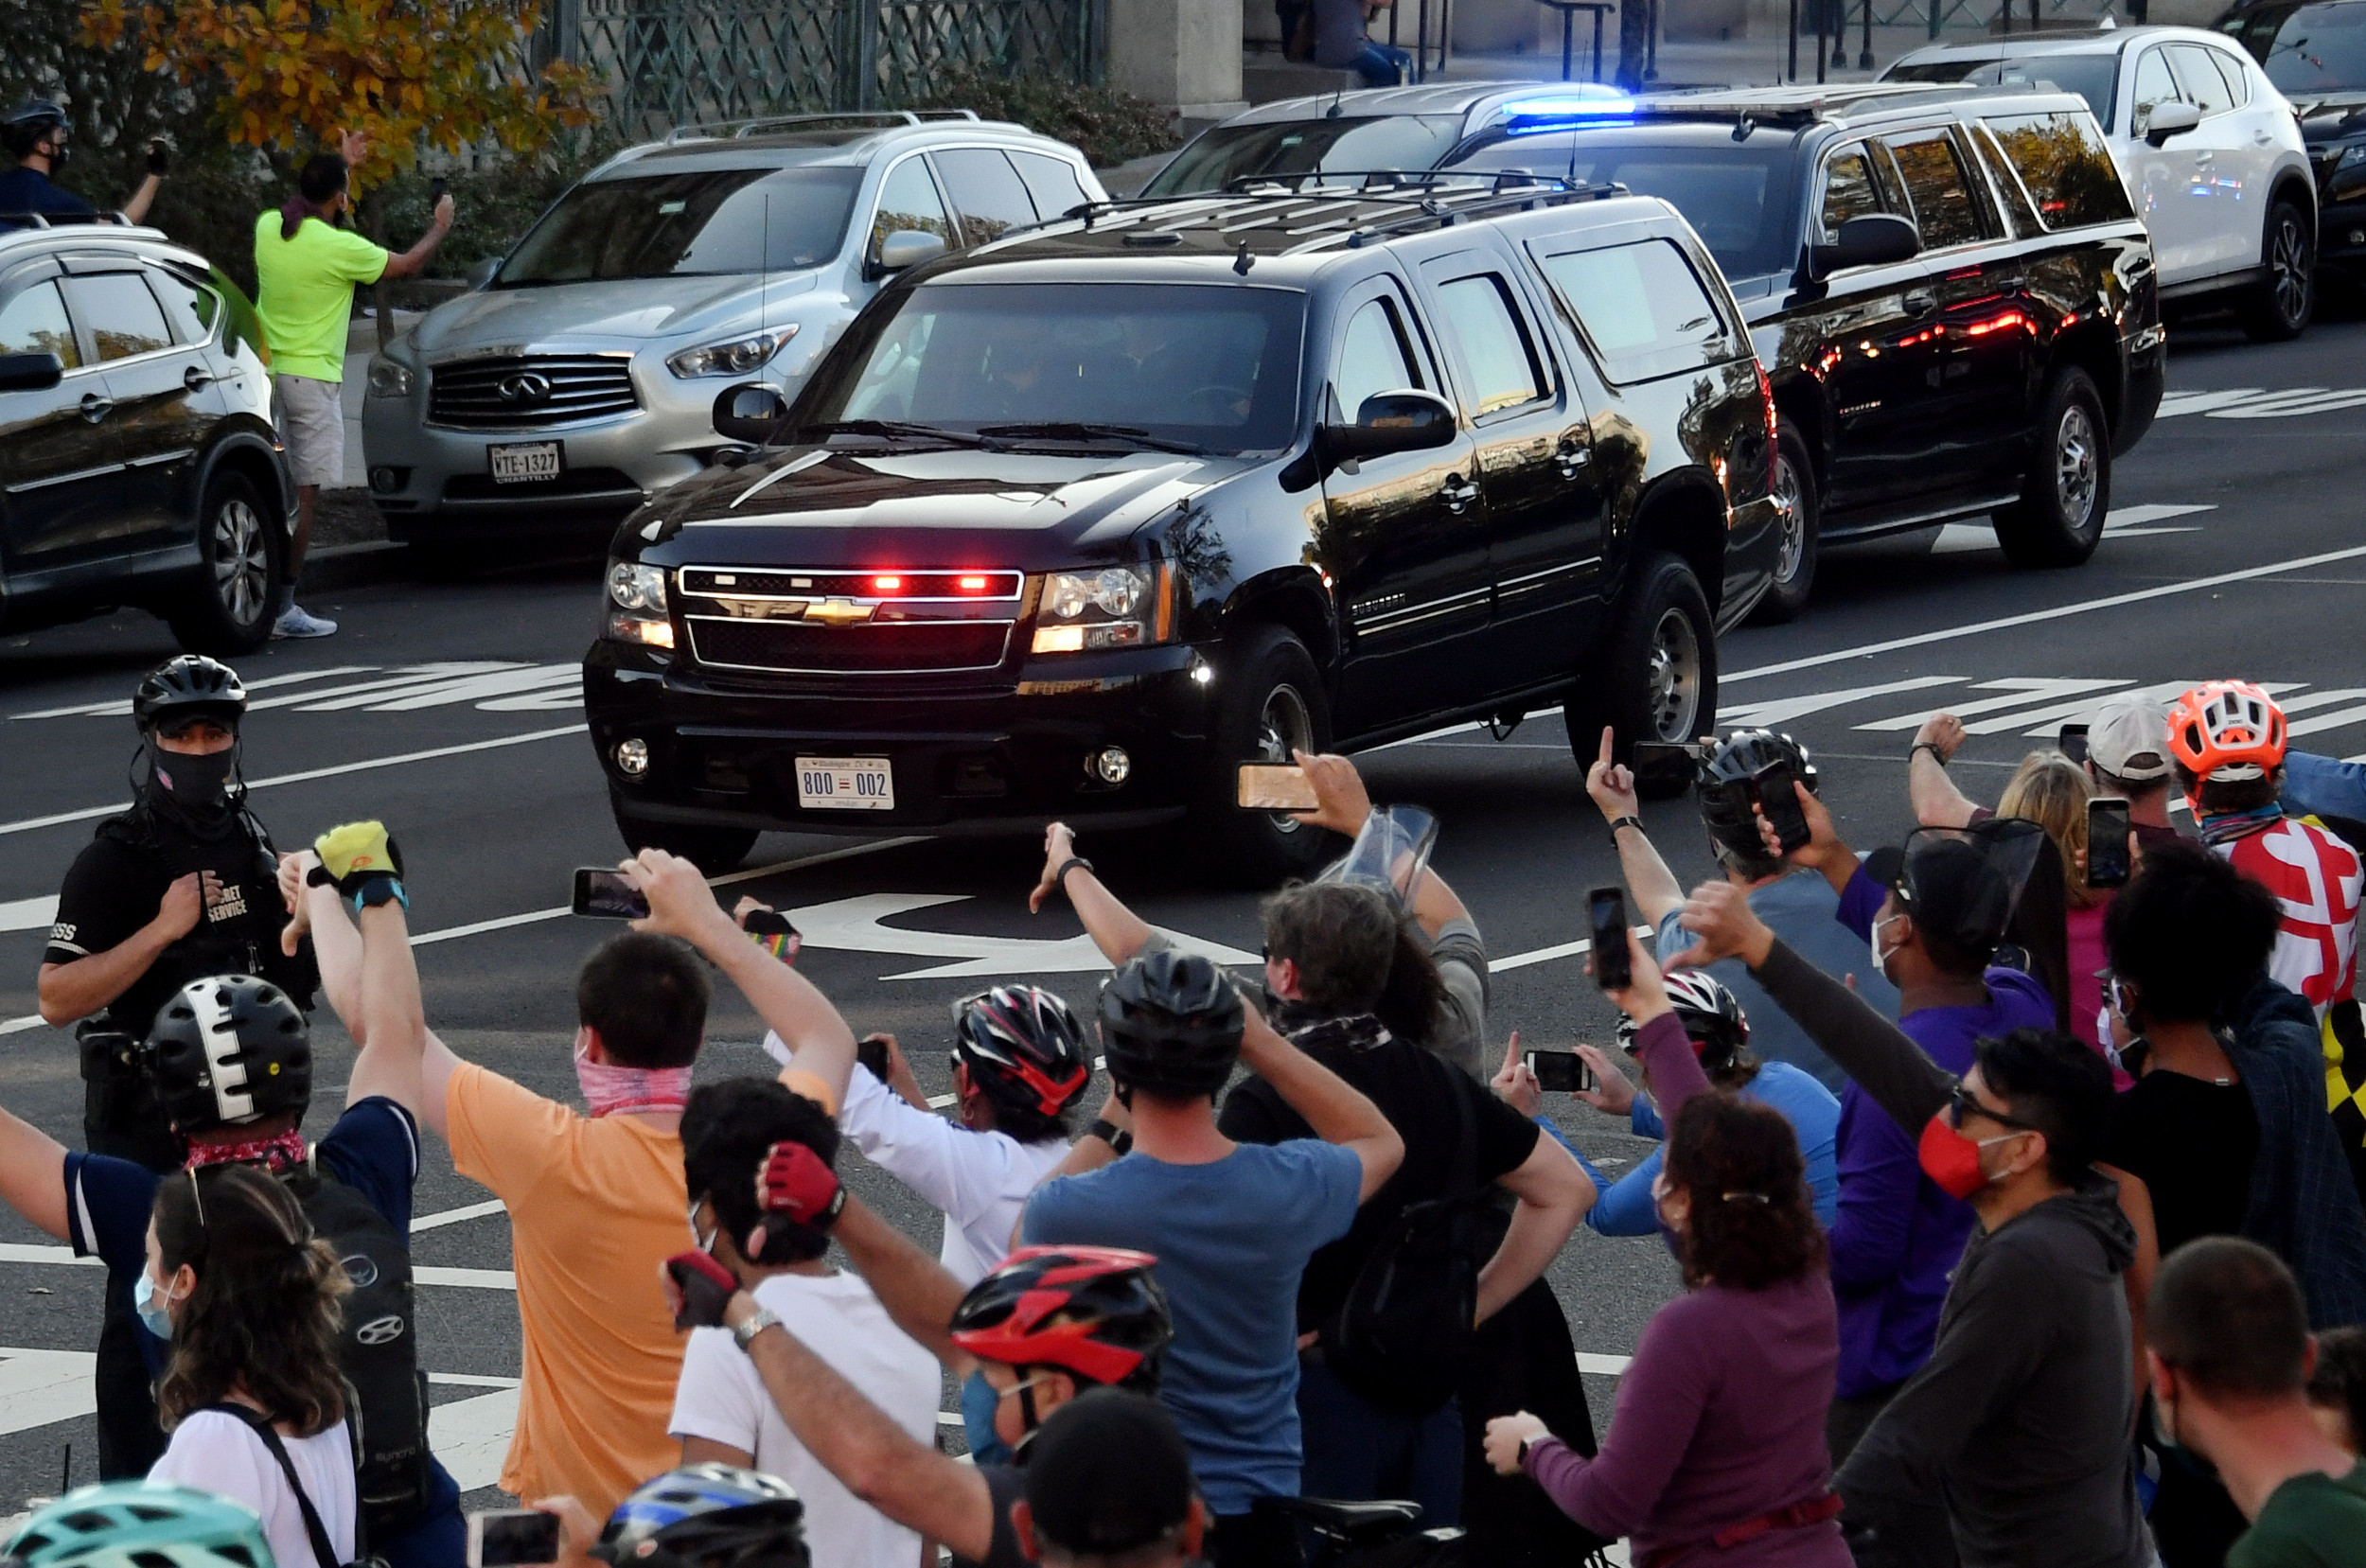 Hundreds flip off Trump's motorcade en route from golf course to White House